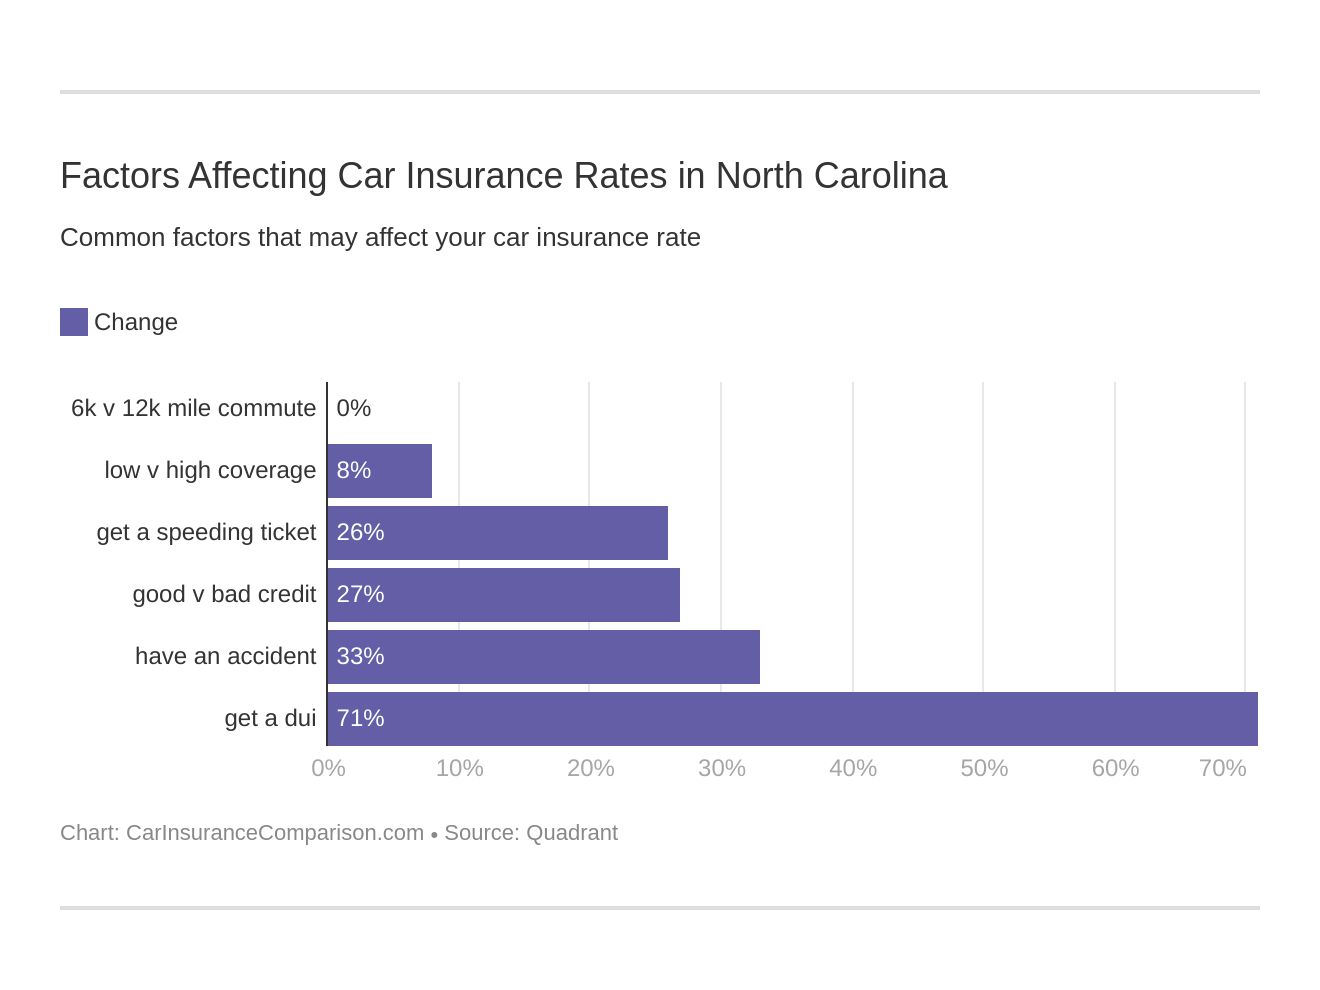 Factors Affecting Car Insurance Rates in North Carolina